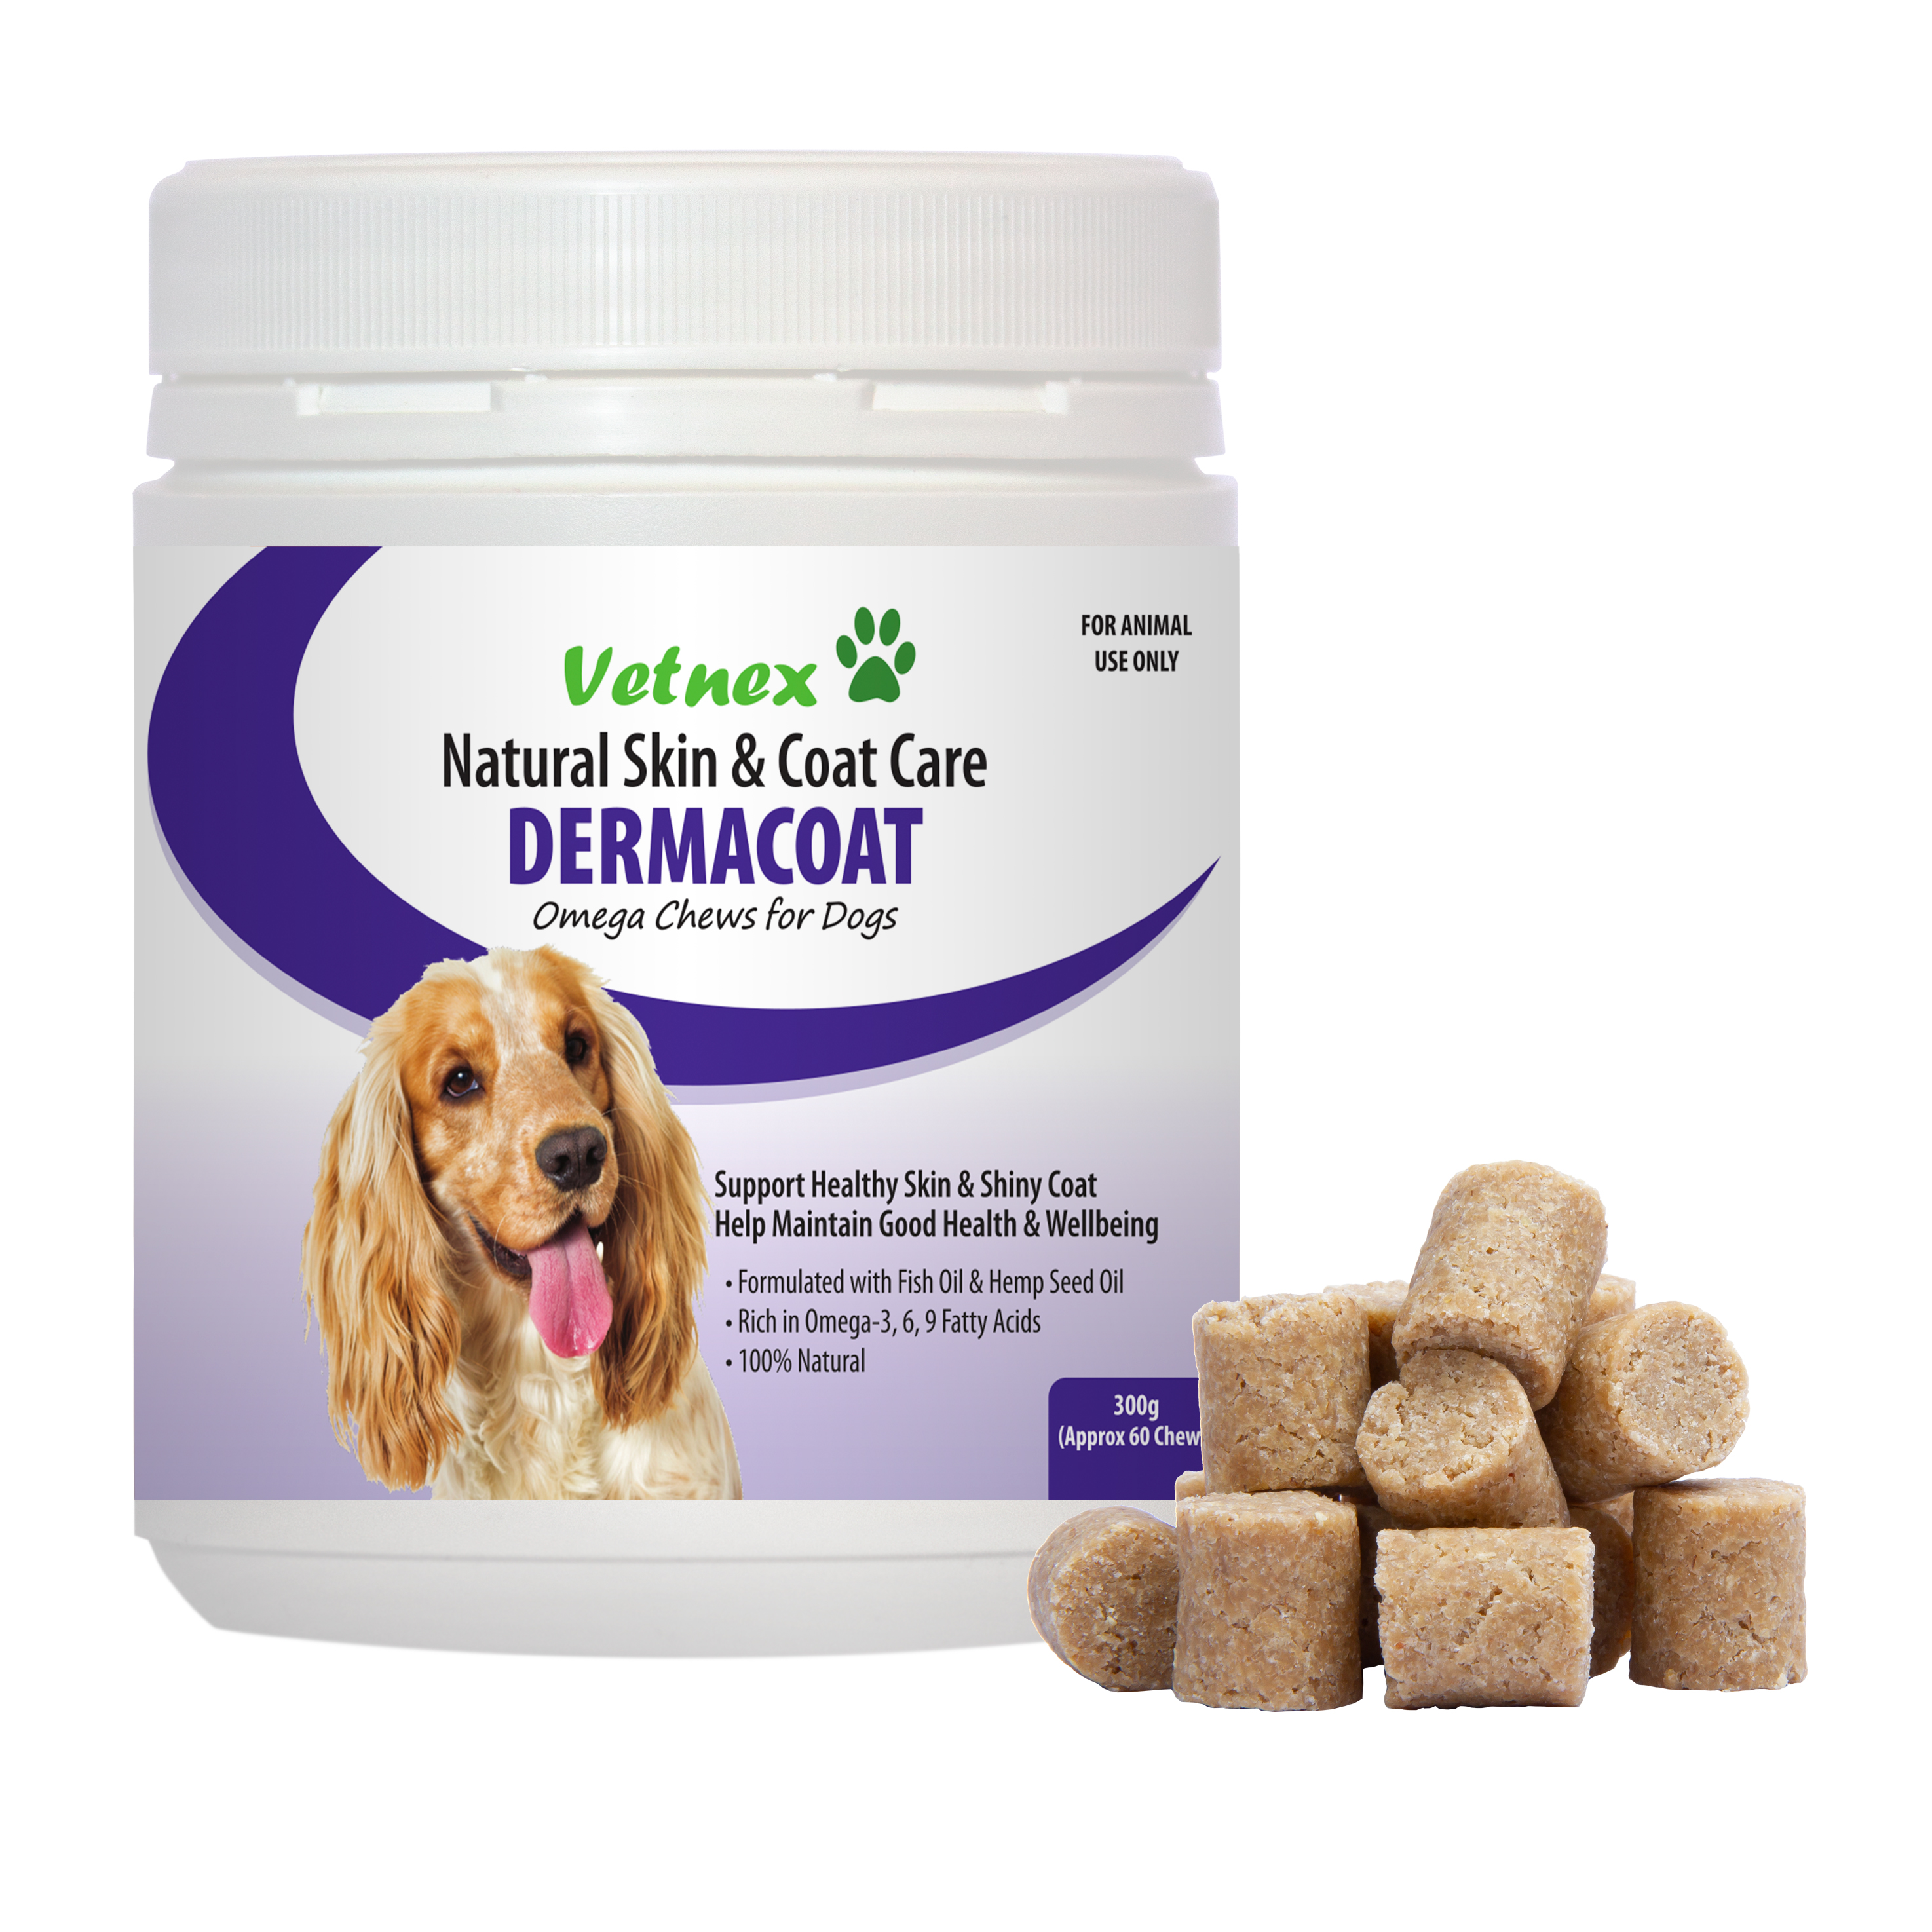 Introducing the Innovative Fish Oil & Hemp Seed Oil Soft Chew Product, DermaCoat